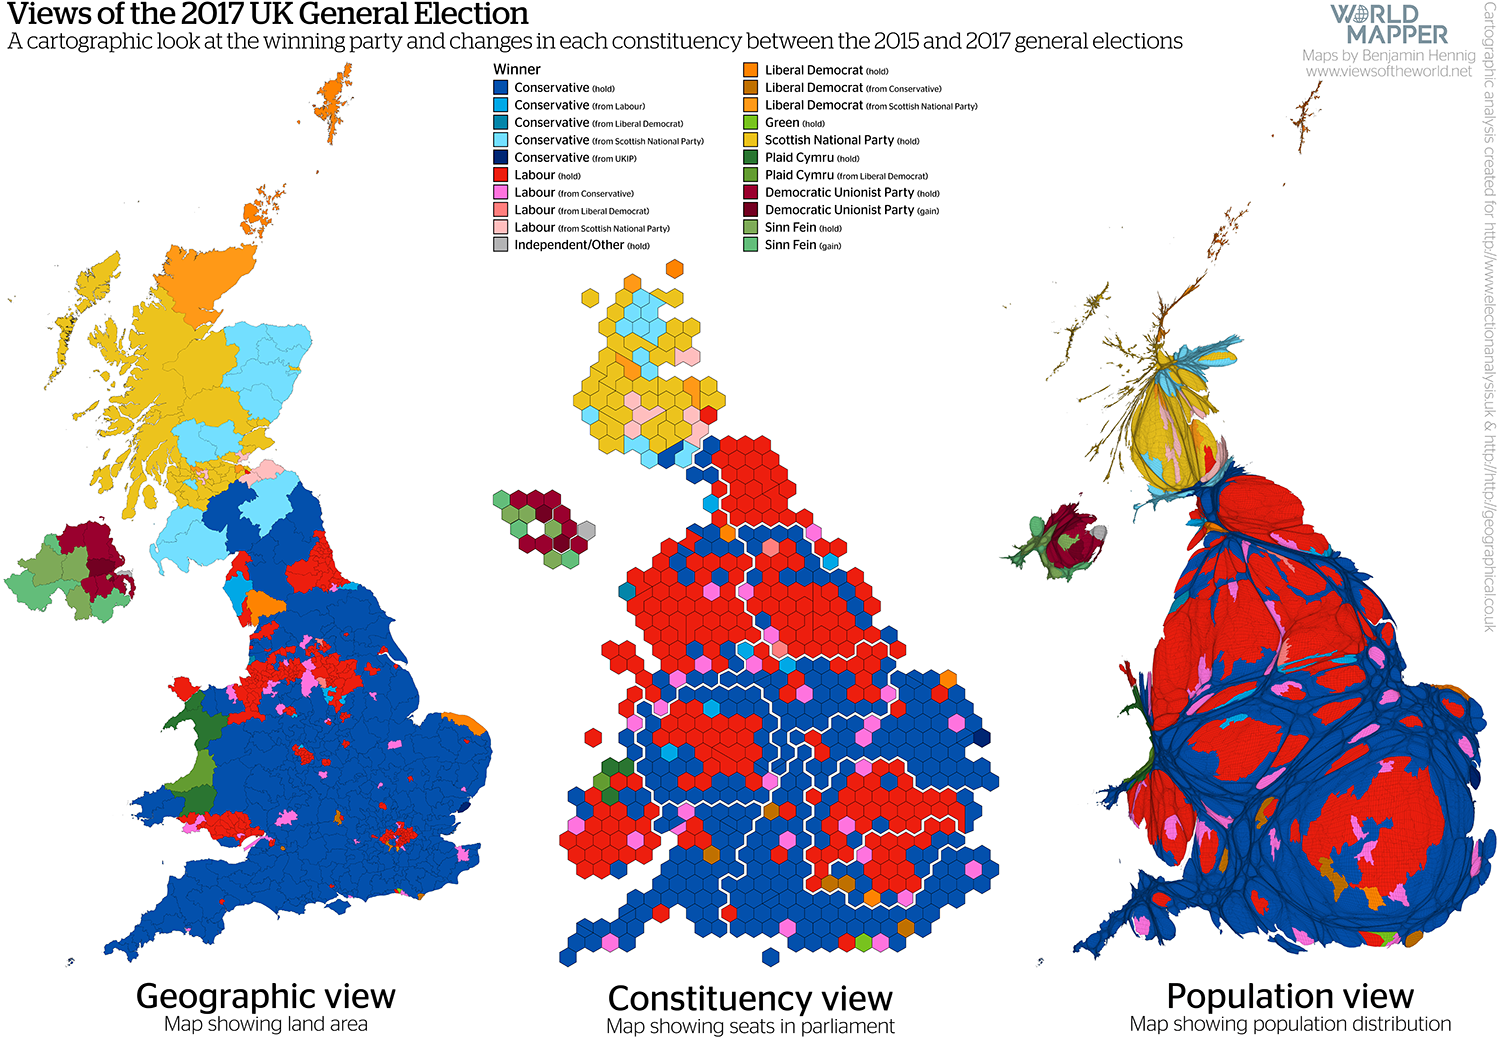 Map Of England 2015.Political Landscapes Of The United Kingdom In 2017 Views Of The World